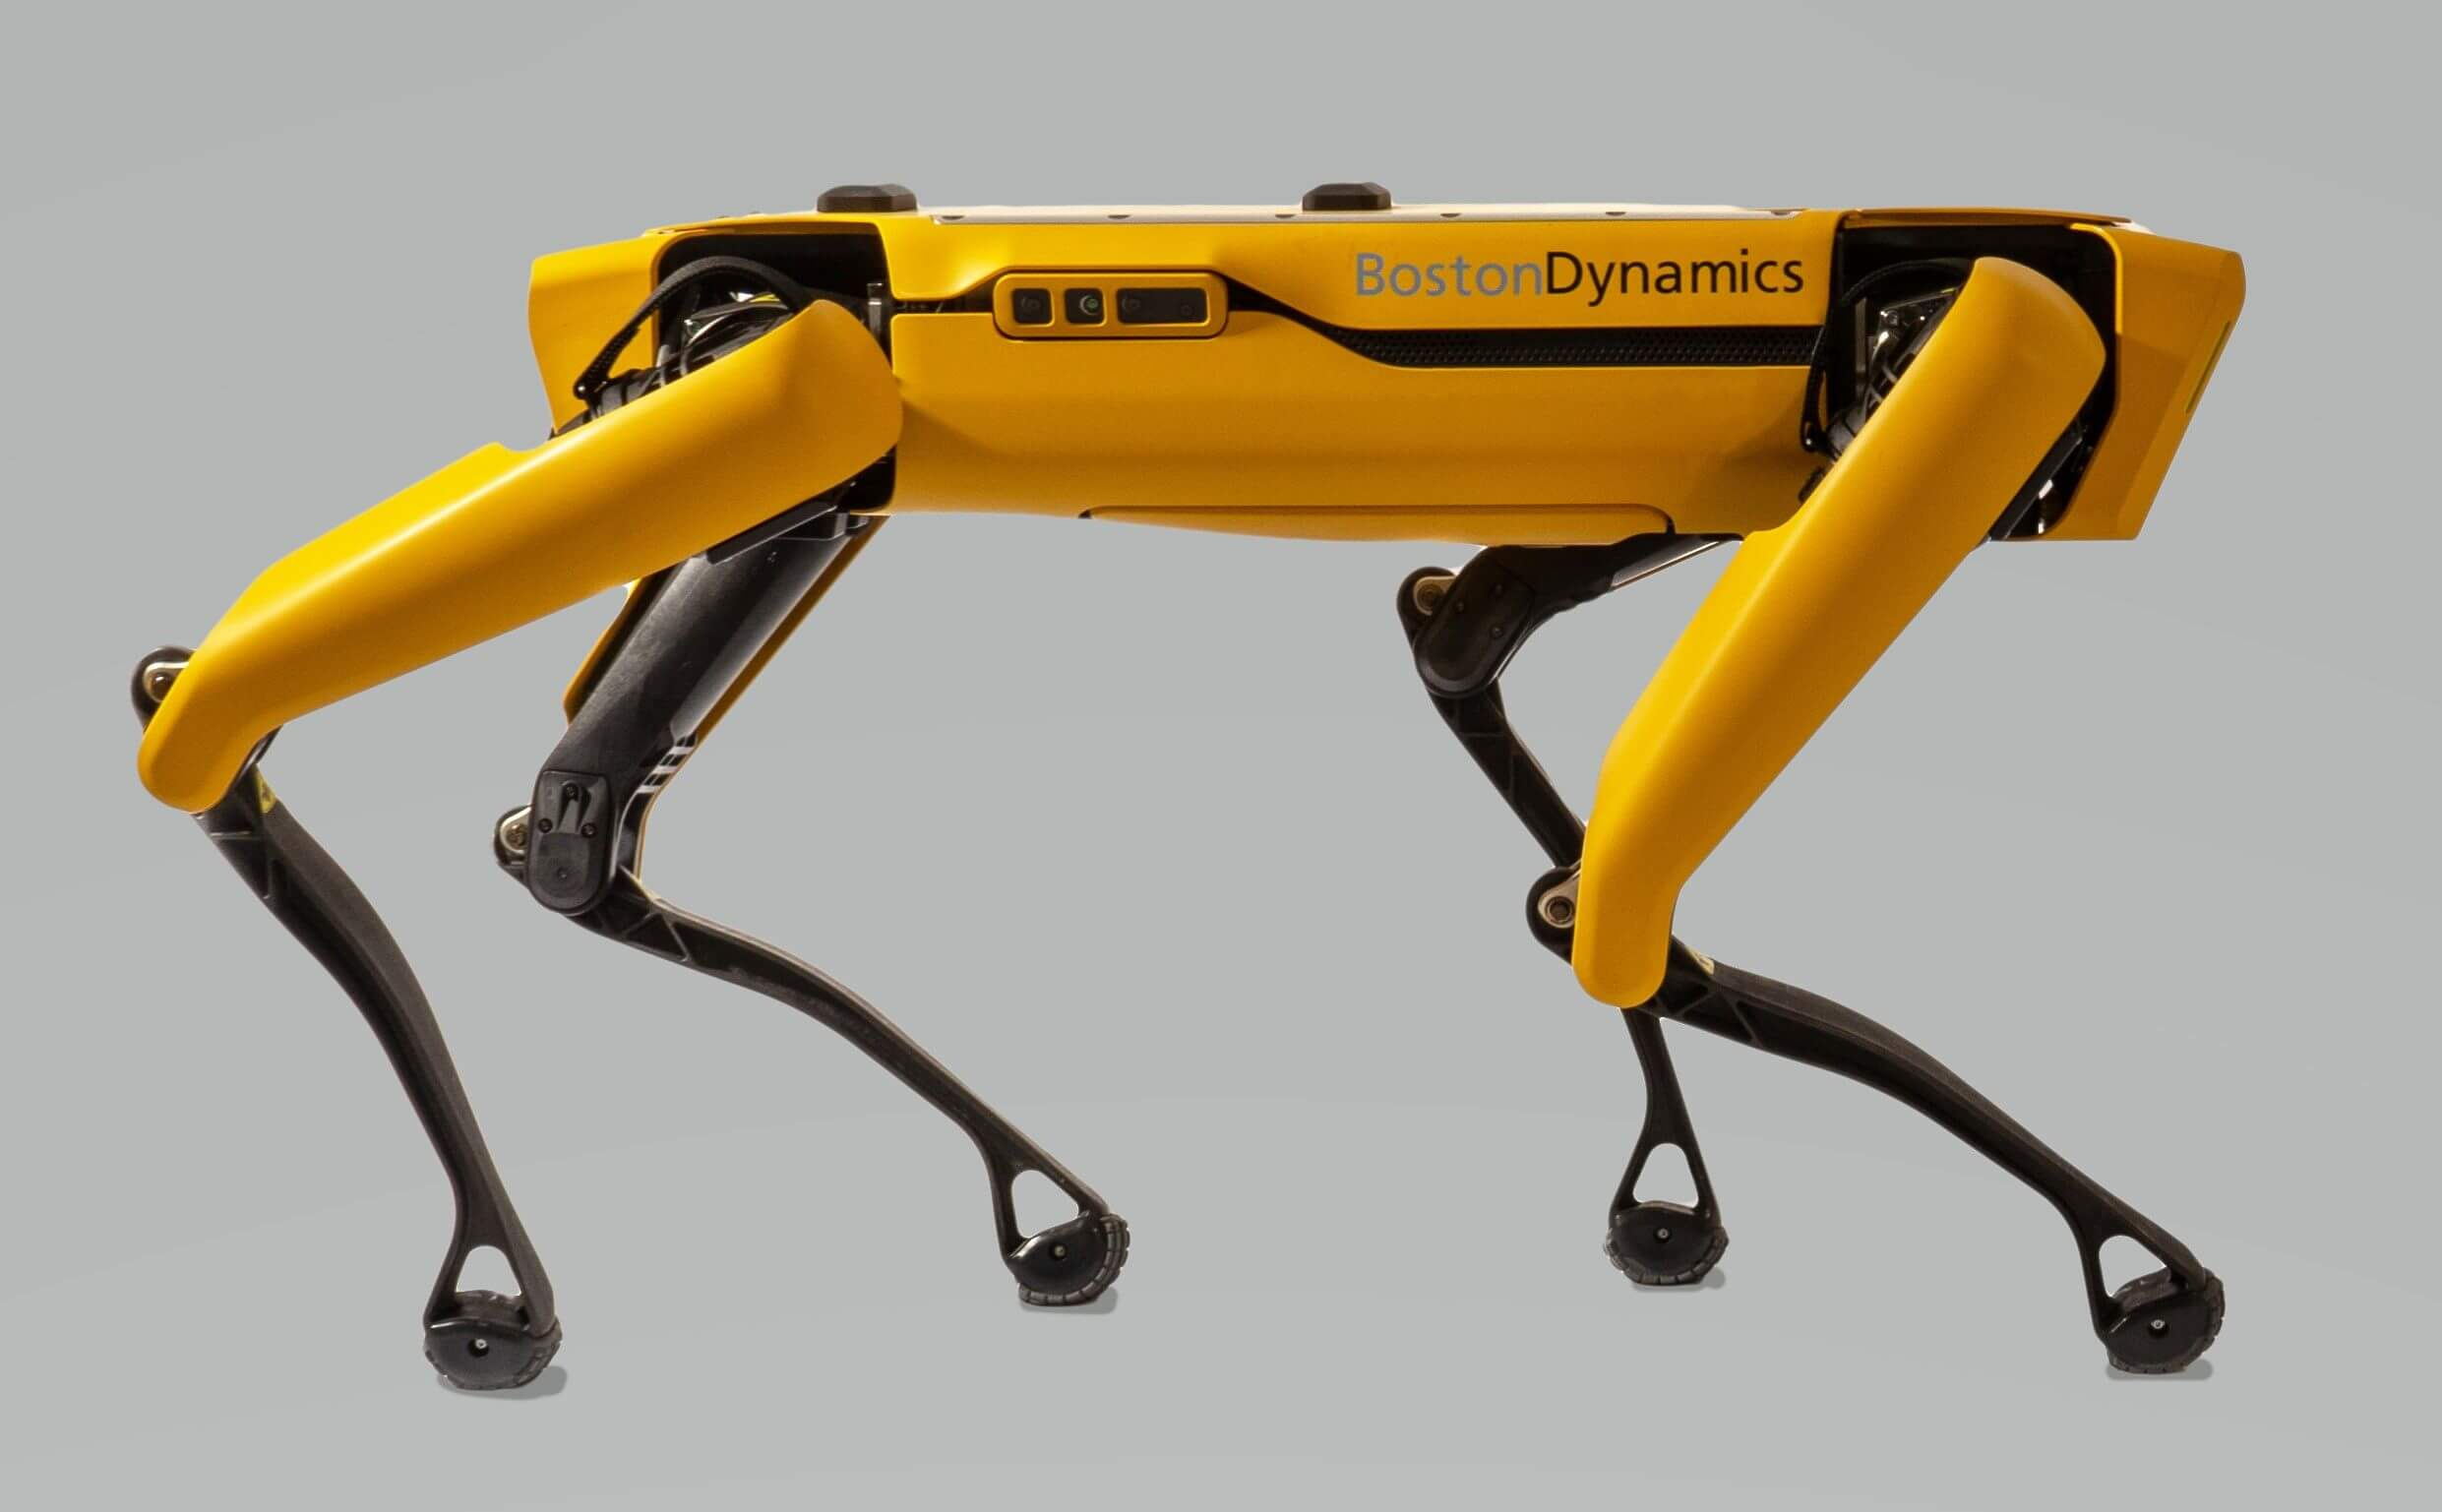 Spot, perro robot de Boston Dynamics